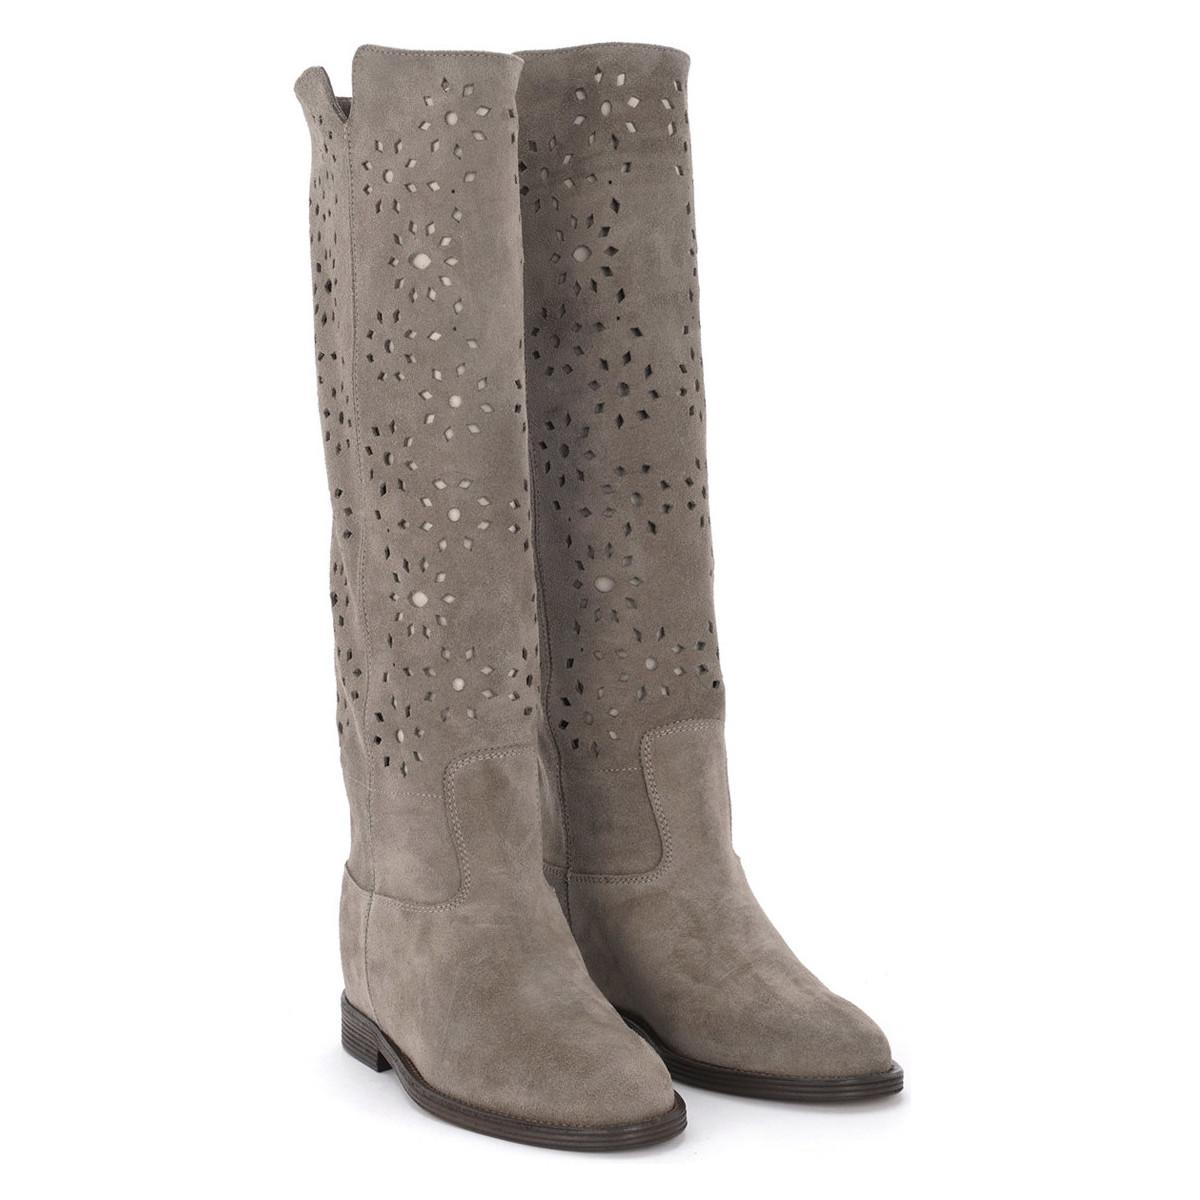 74635d1007 Via Roma 15 - Gray Velour Grey Tundra Suede Pierced Leather Ankle Boots.  Women's High. View fullscreen